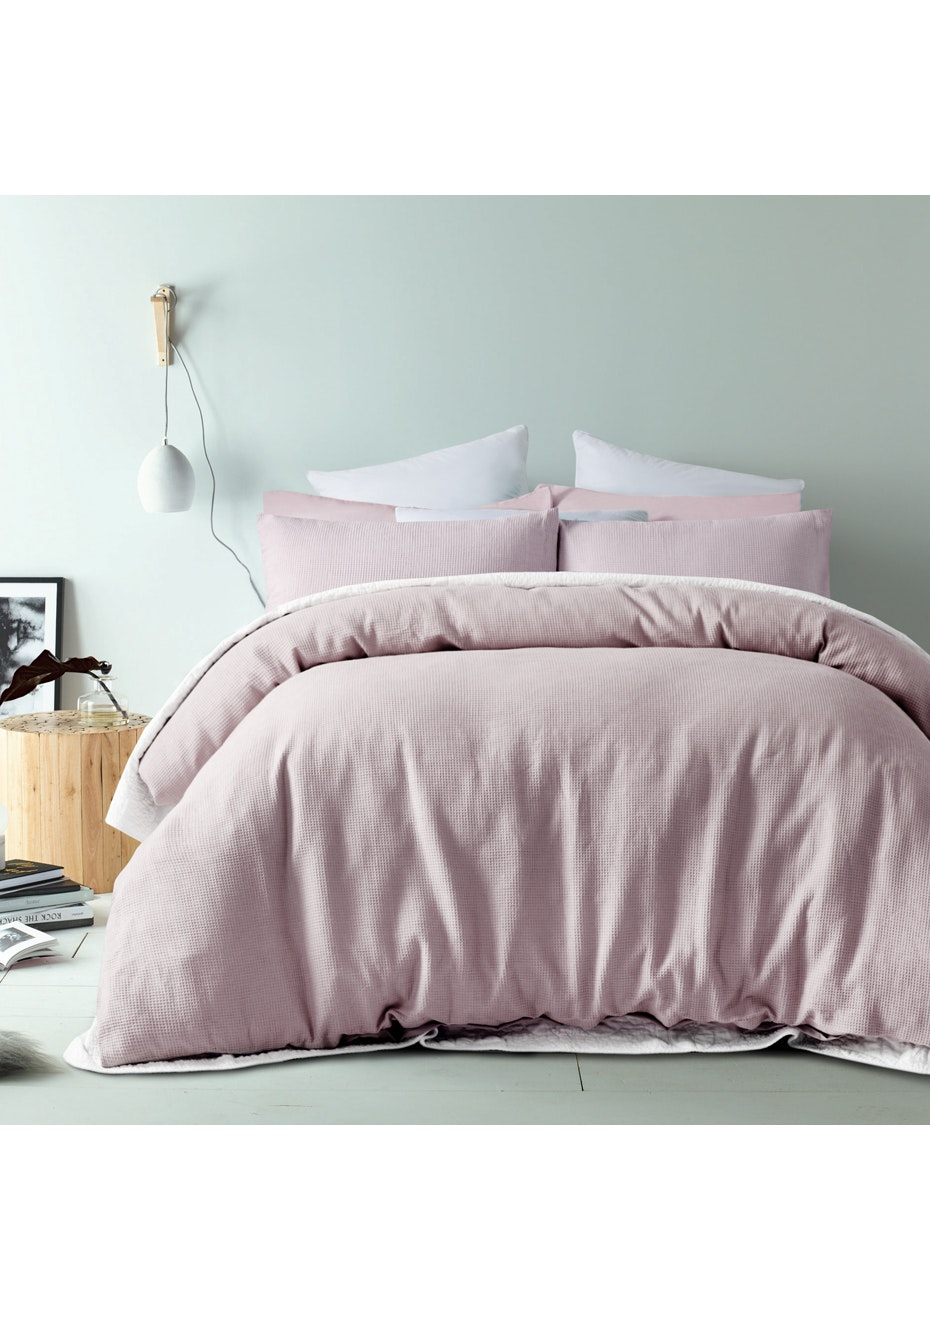 Blush Waffle Linen Cotton Quilt Cover Set- King Bed